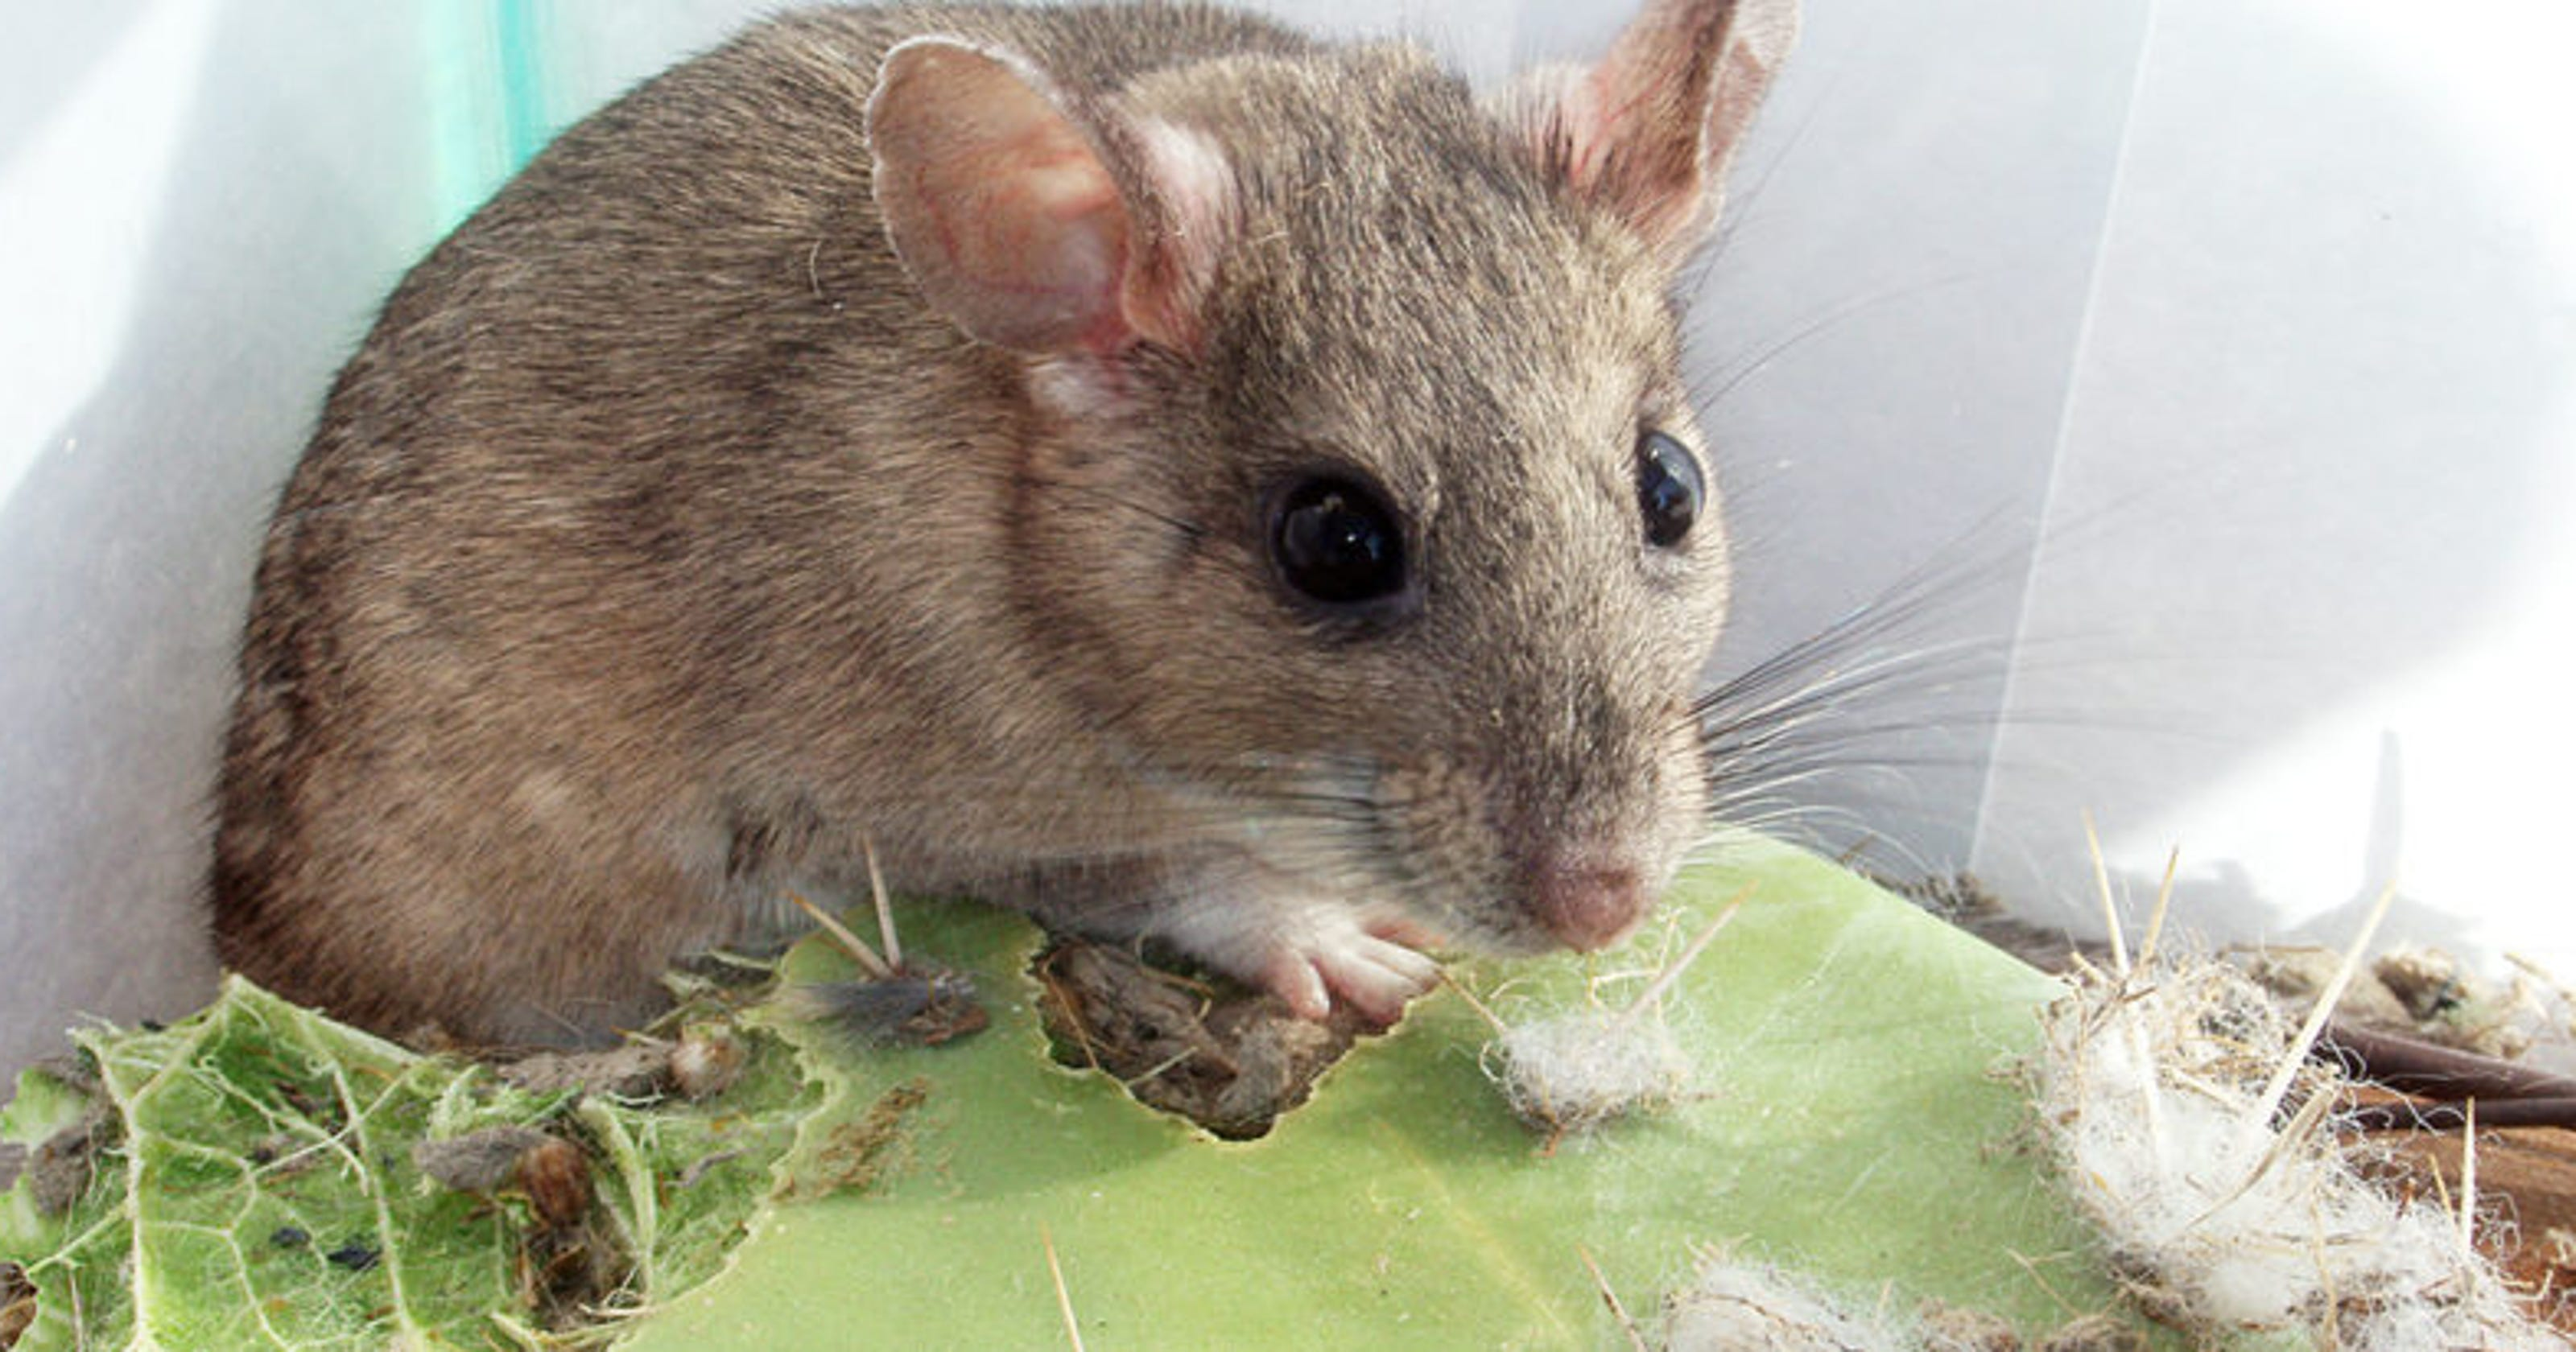 They may be cute, but these Southwestern rats pack an